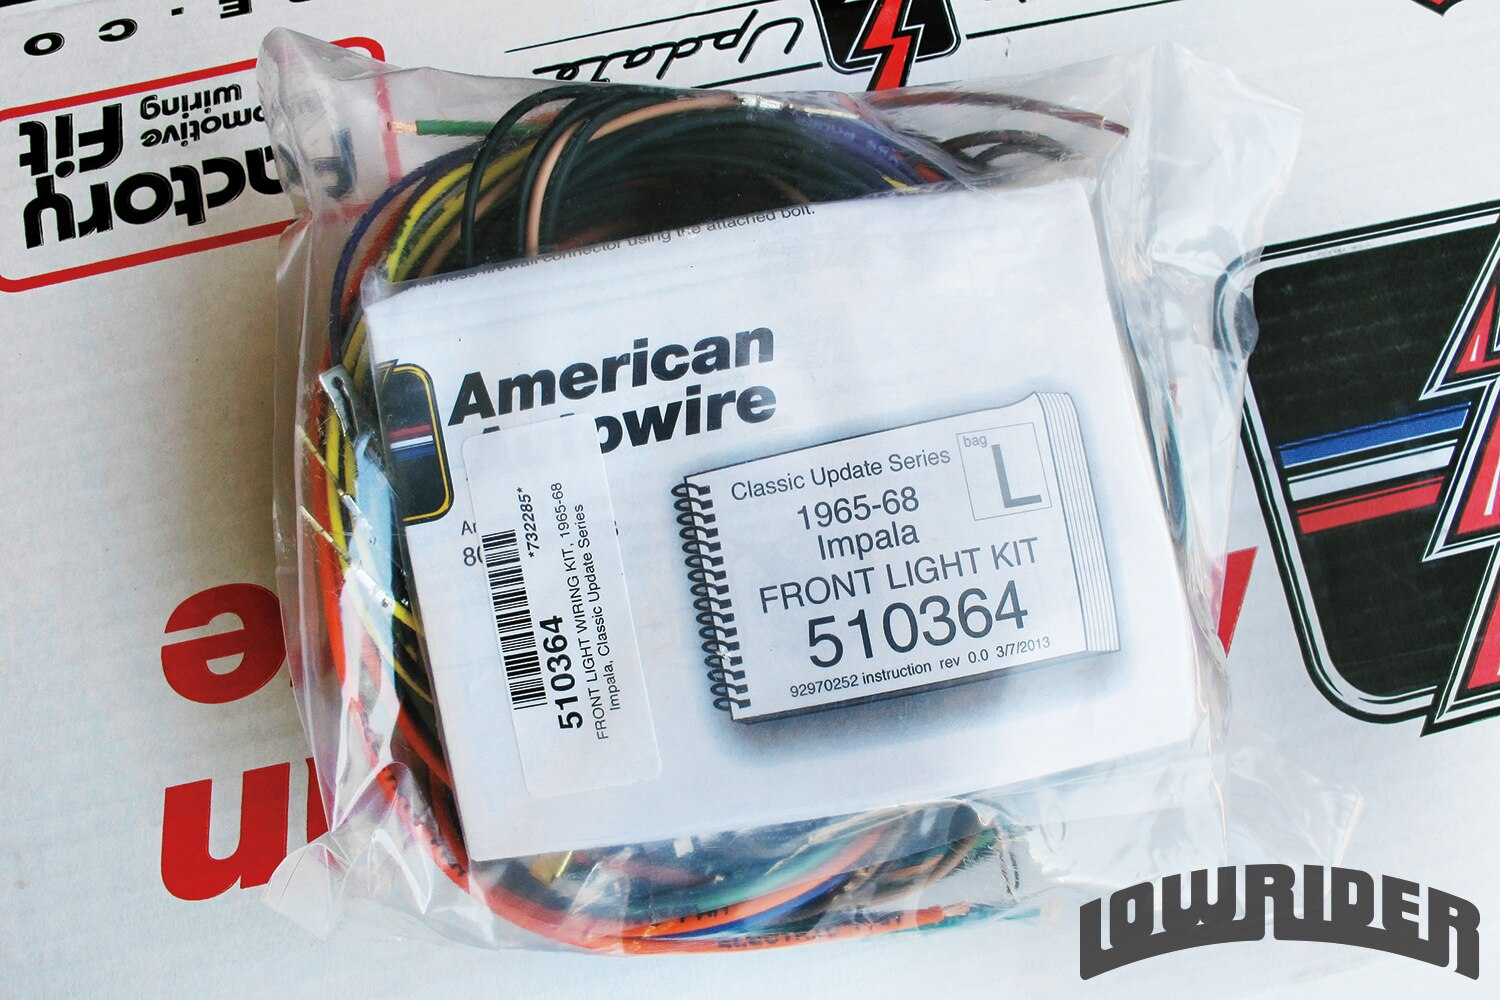 <strong>4</strong>. This kit is fully labeled, and you can see the quality and the gauge of the wiring.